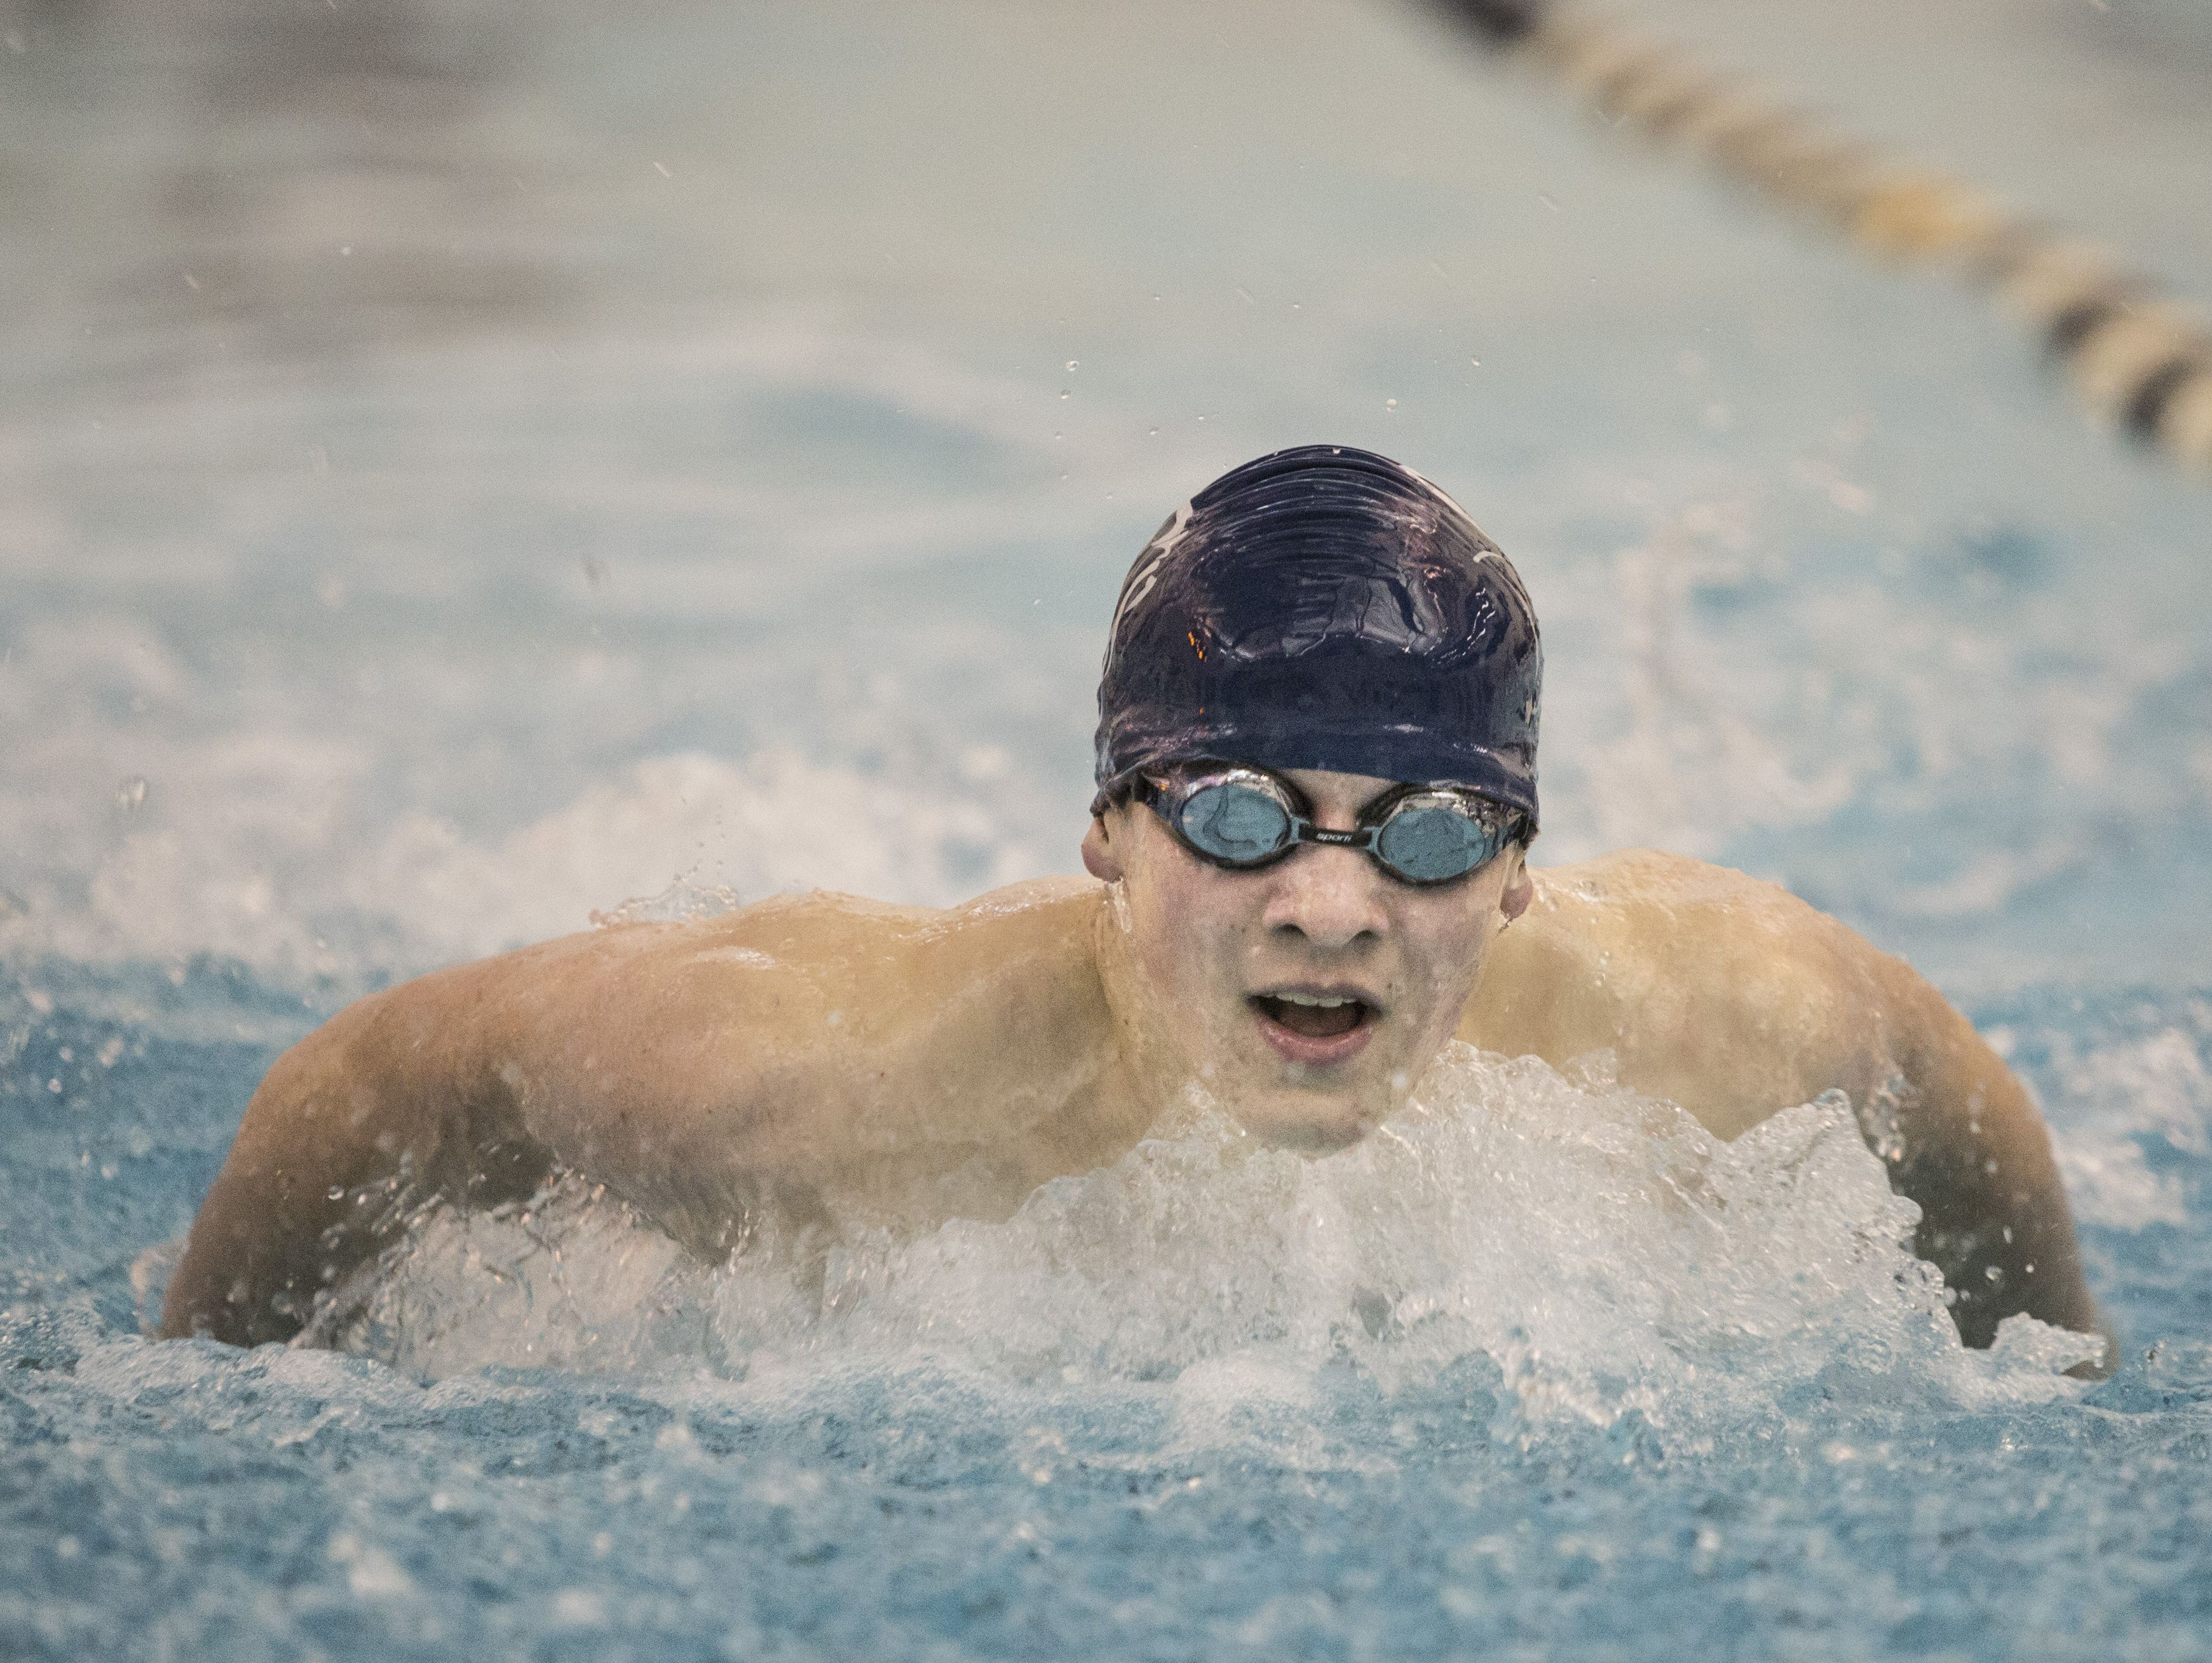 Marysville's Jeremy Latham competes in the 100 yard butterfly during a swim meet Tuesday, Feb. 9, 2016 at Marysville High School.